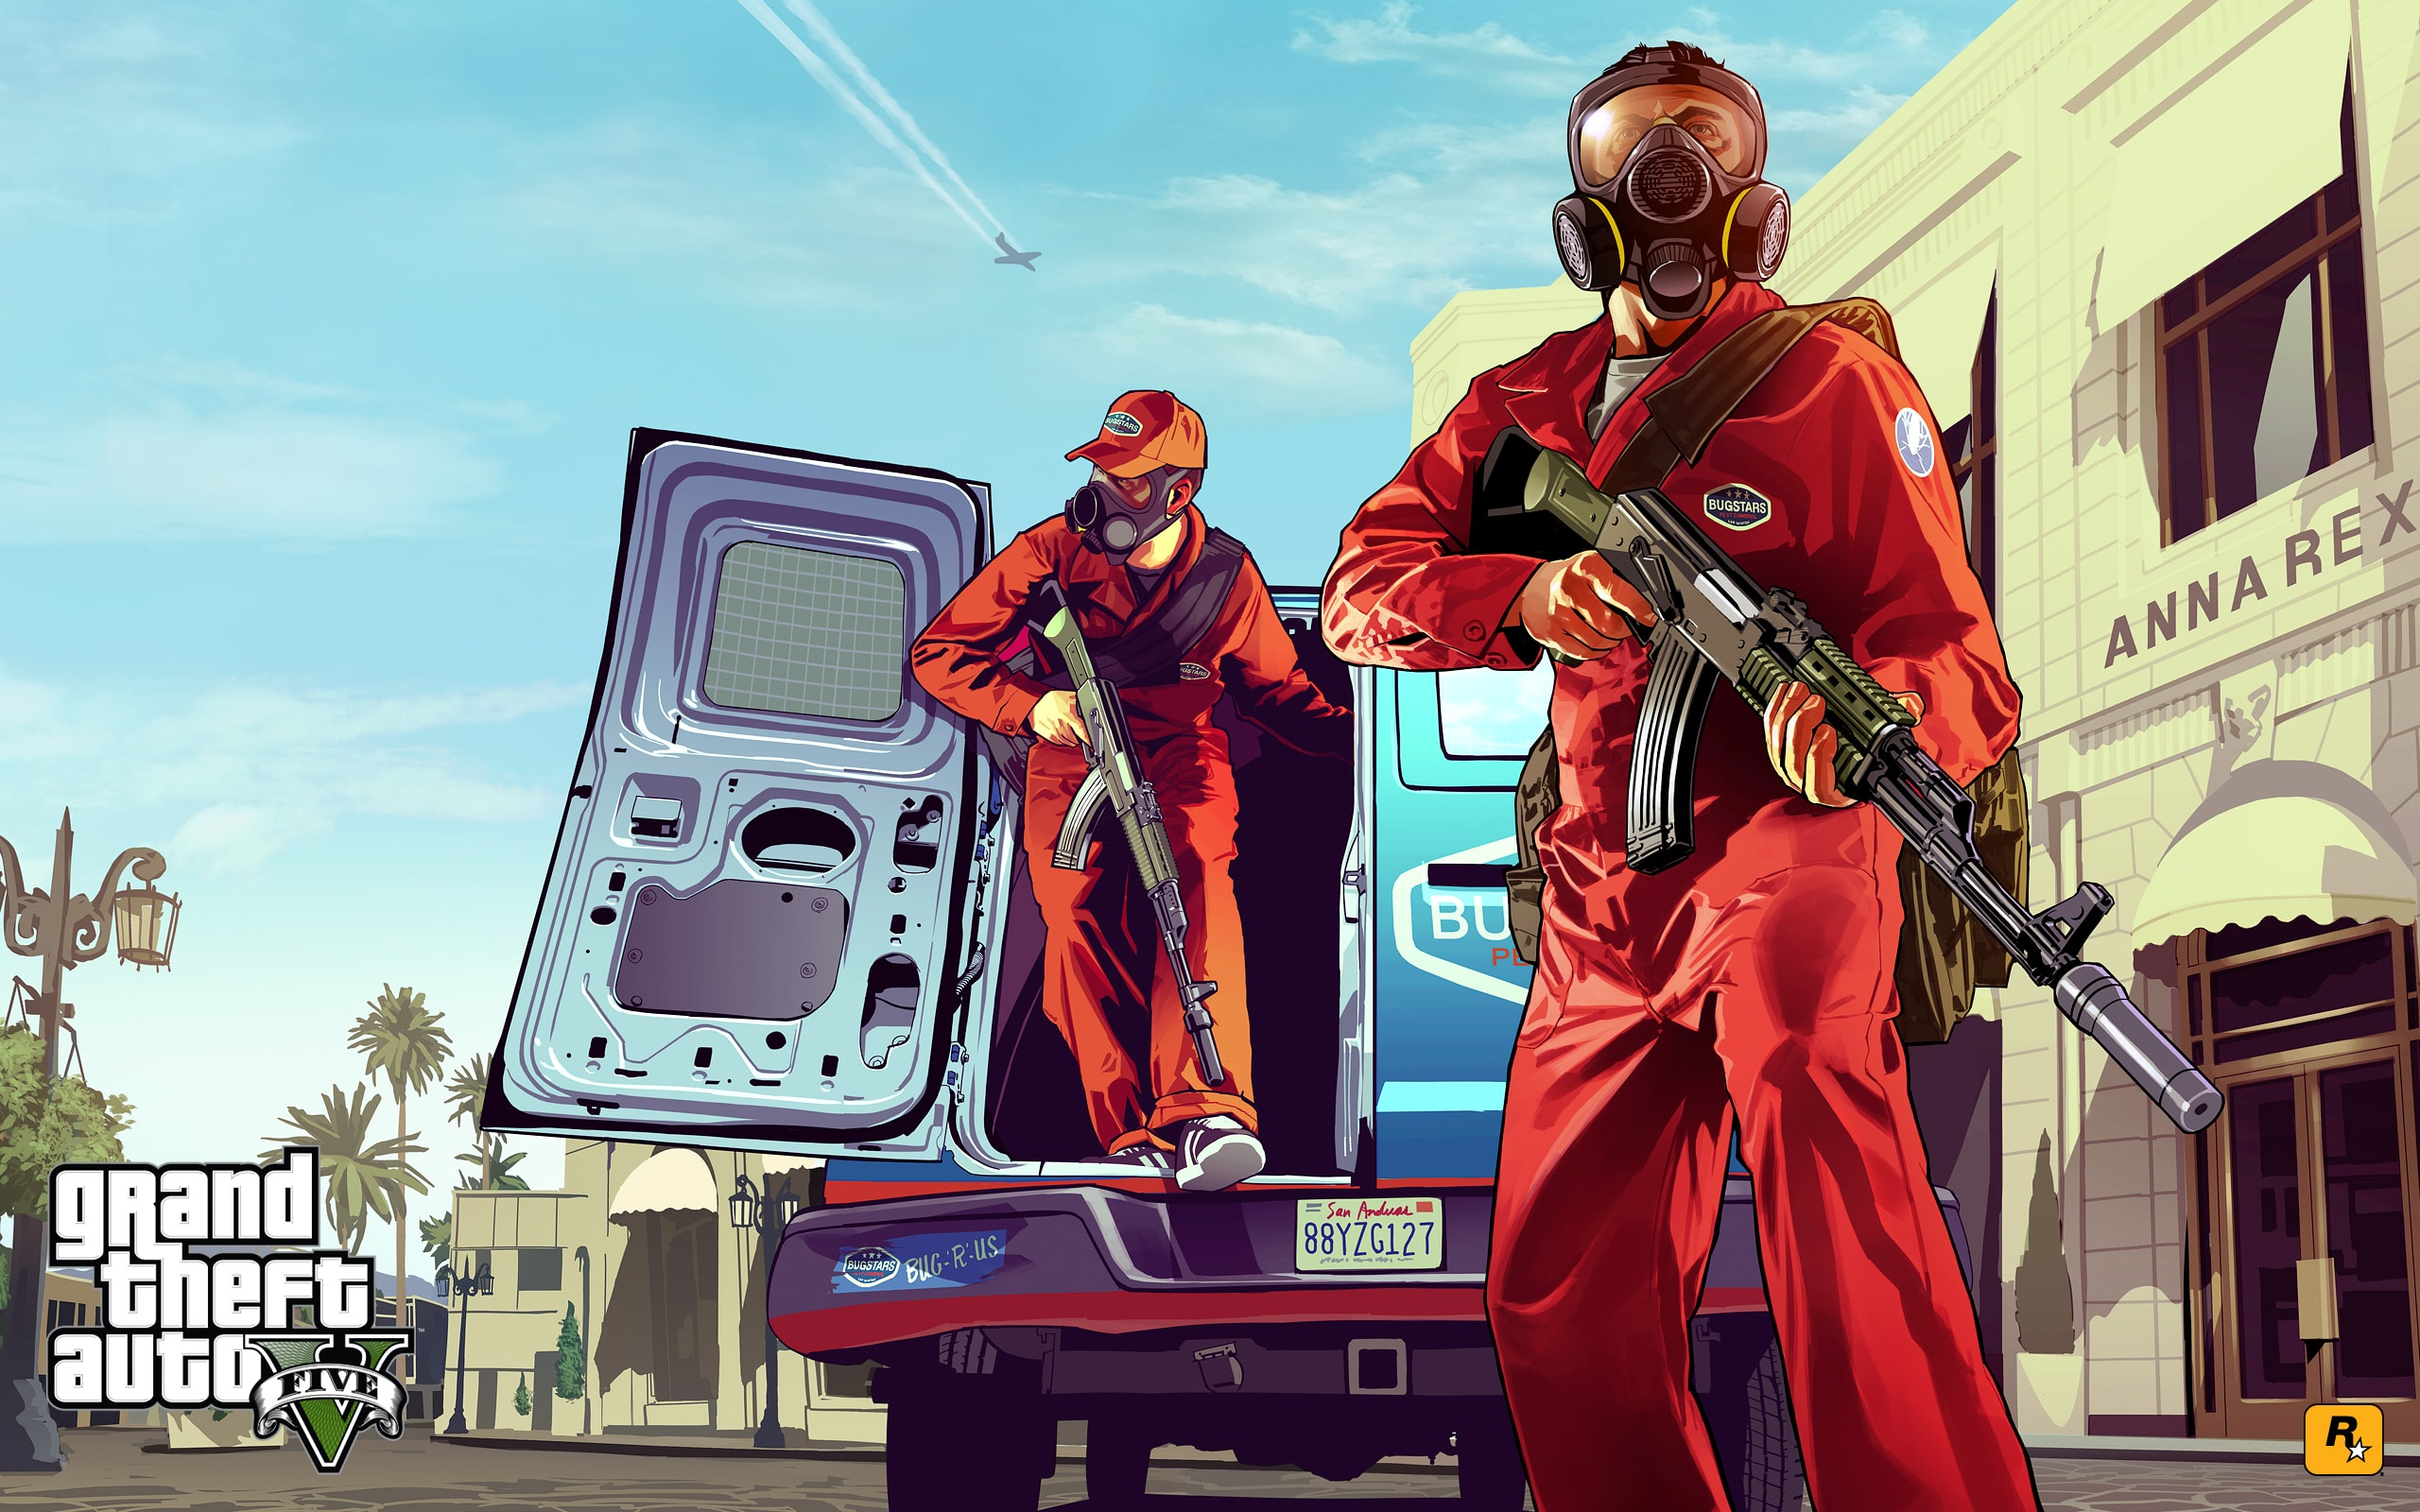 gta 5 hd desktop wallpapers | 7wallpapers